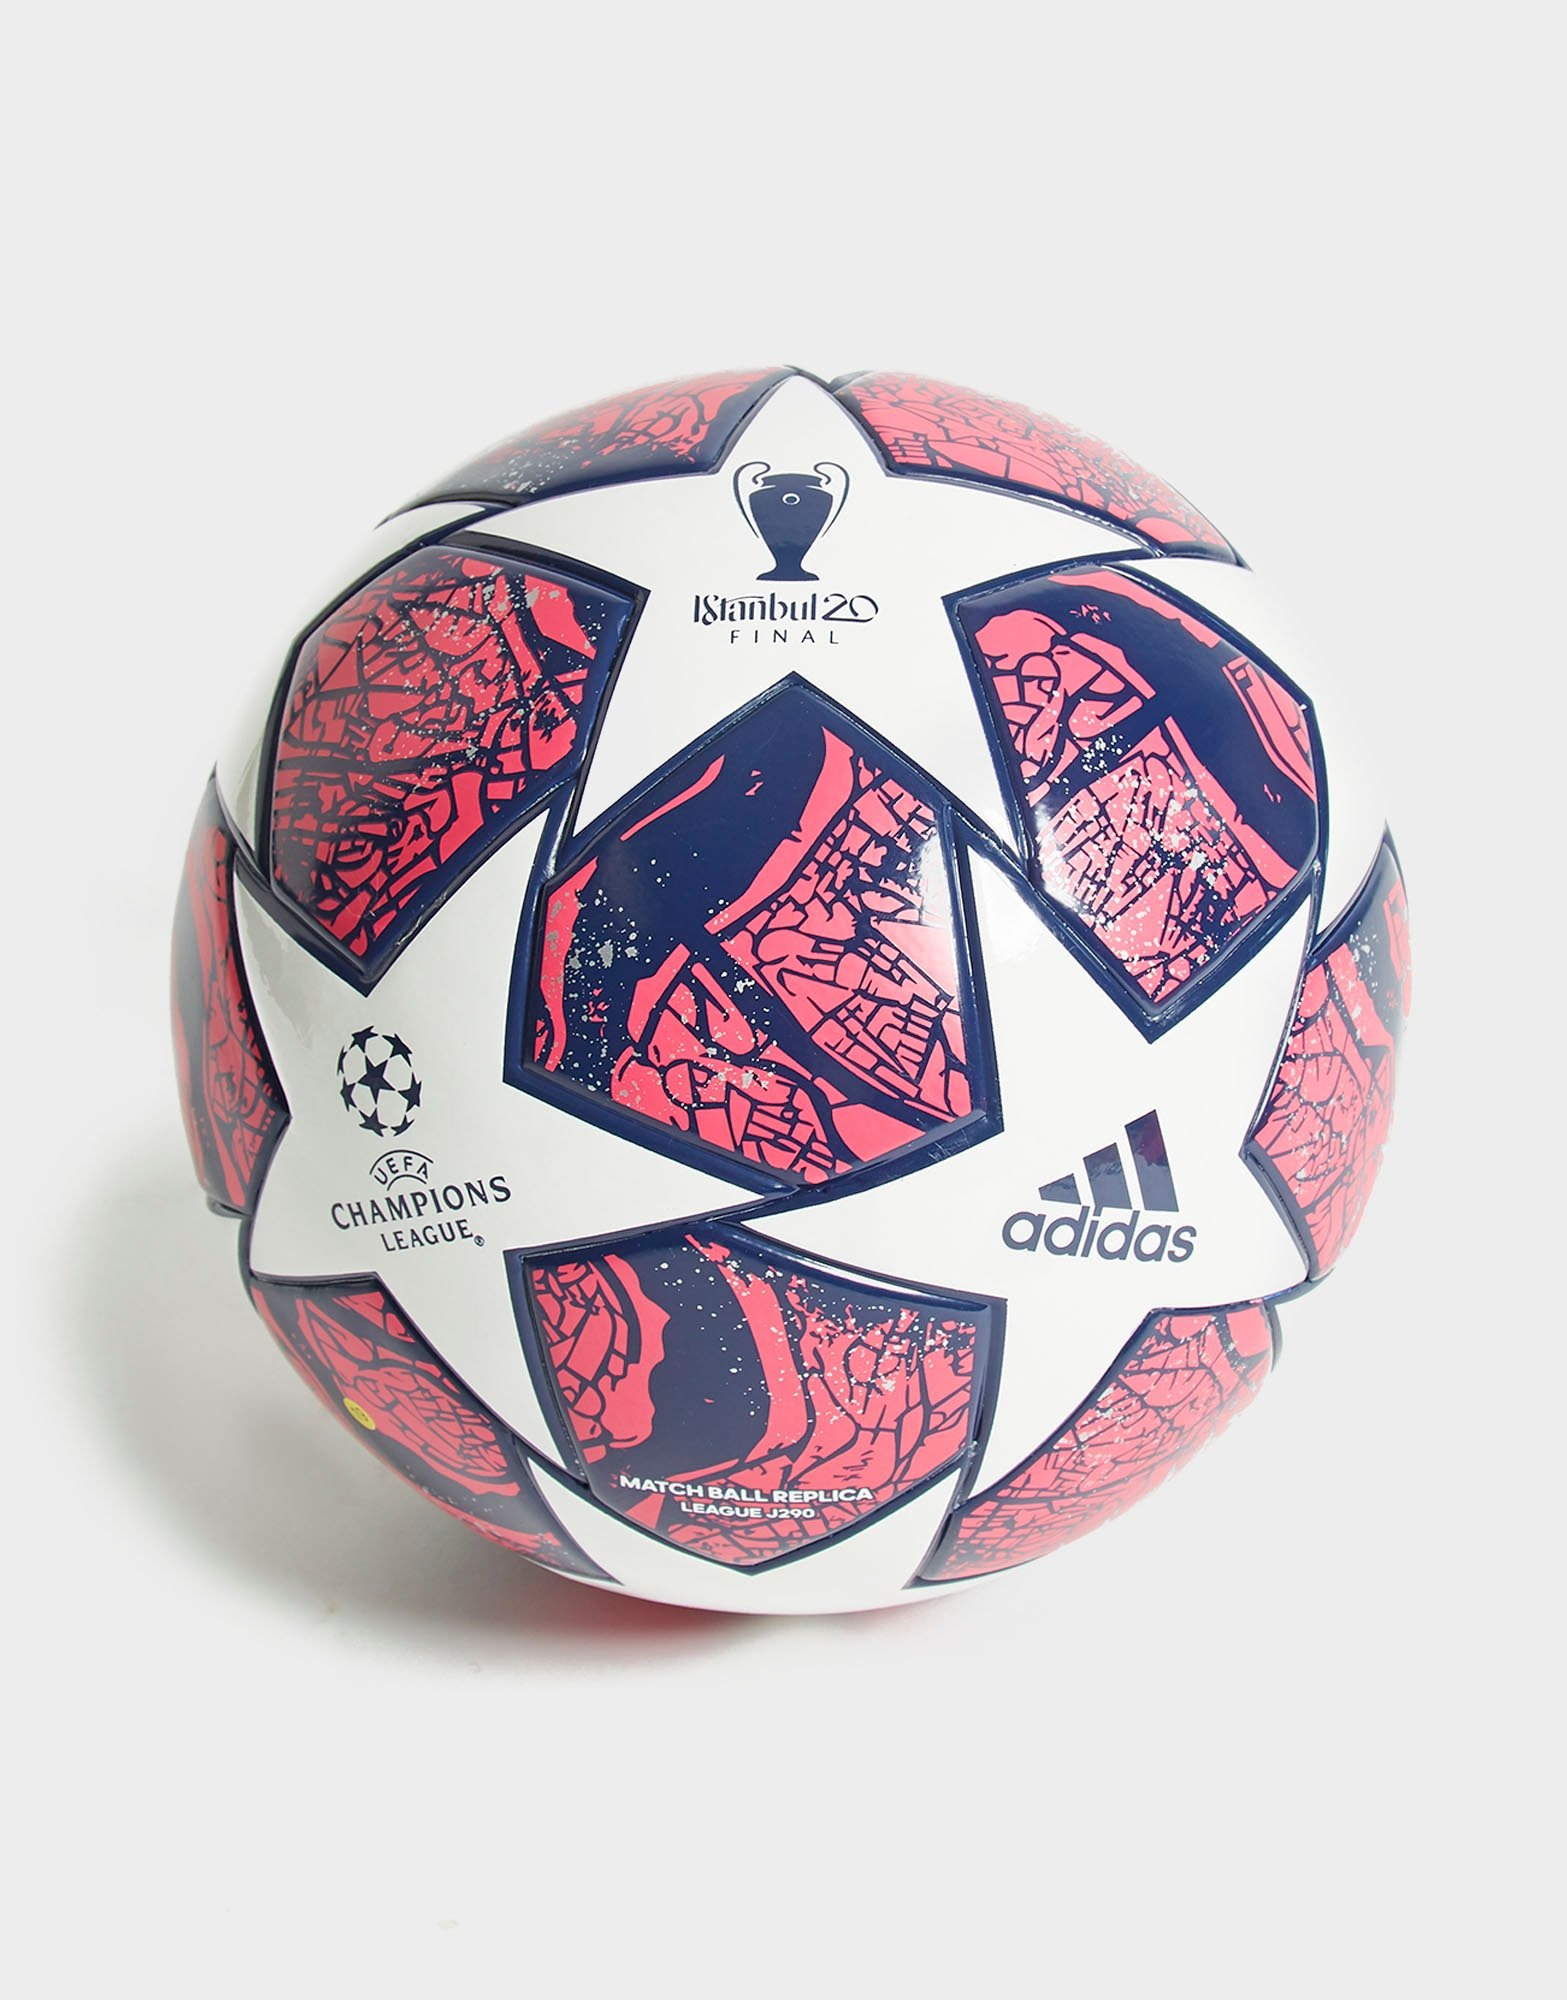 Acusador compañero Tradicion  Buy adidas Champions League 2020 Final J290 Football | JD Sports